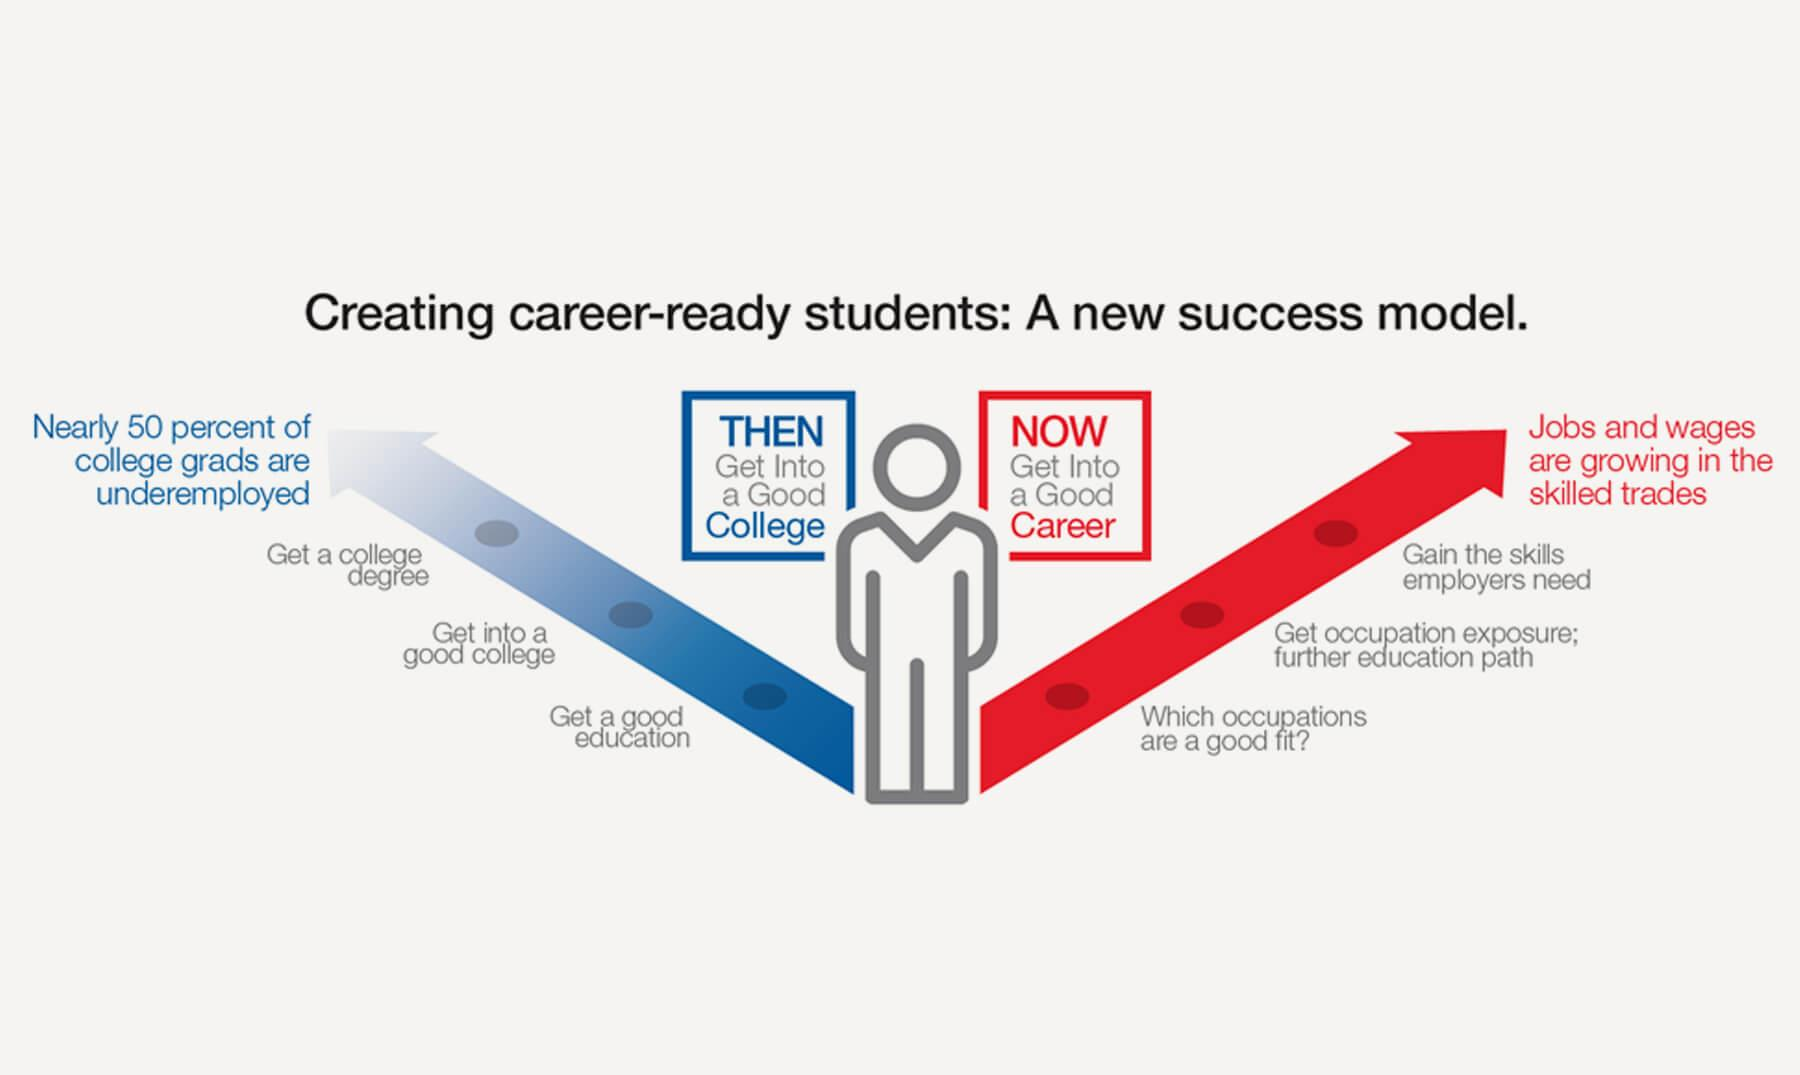 Creating Career Ready Student Infographic